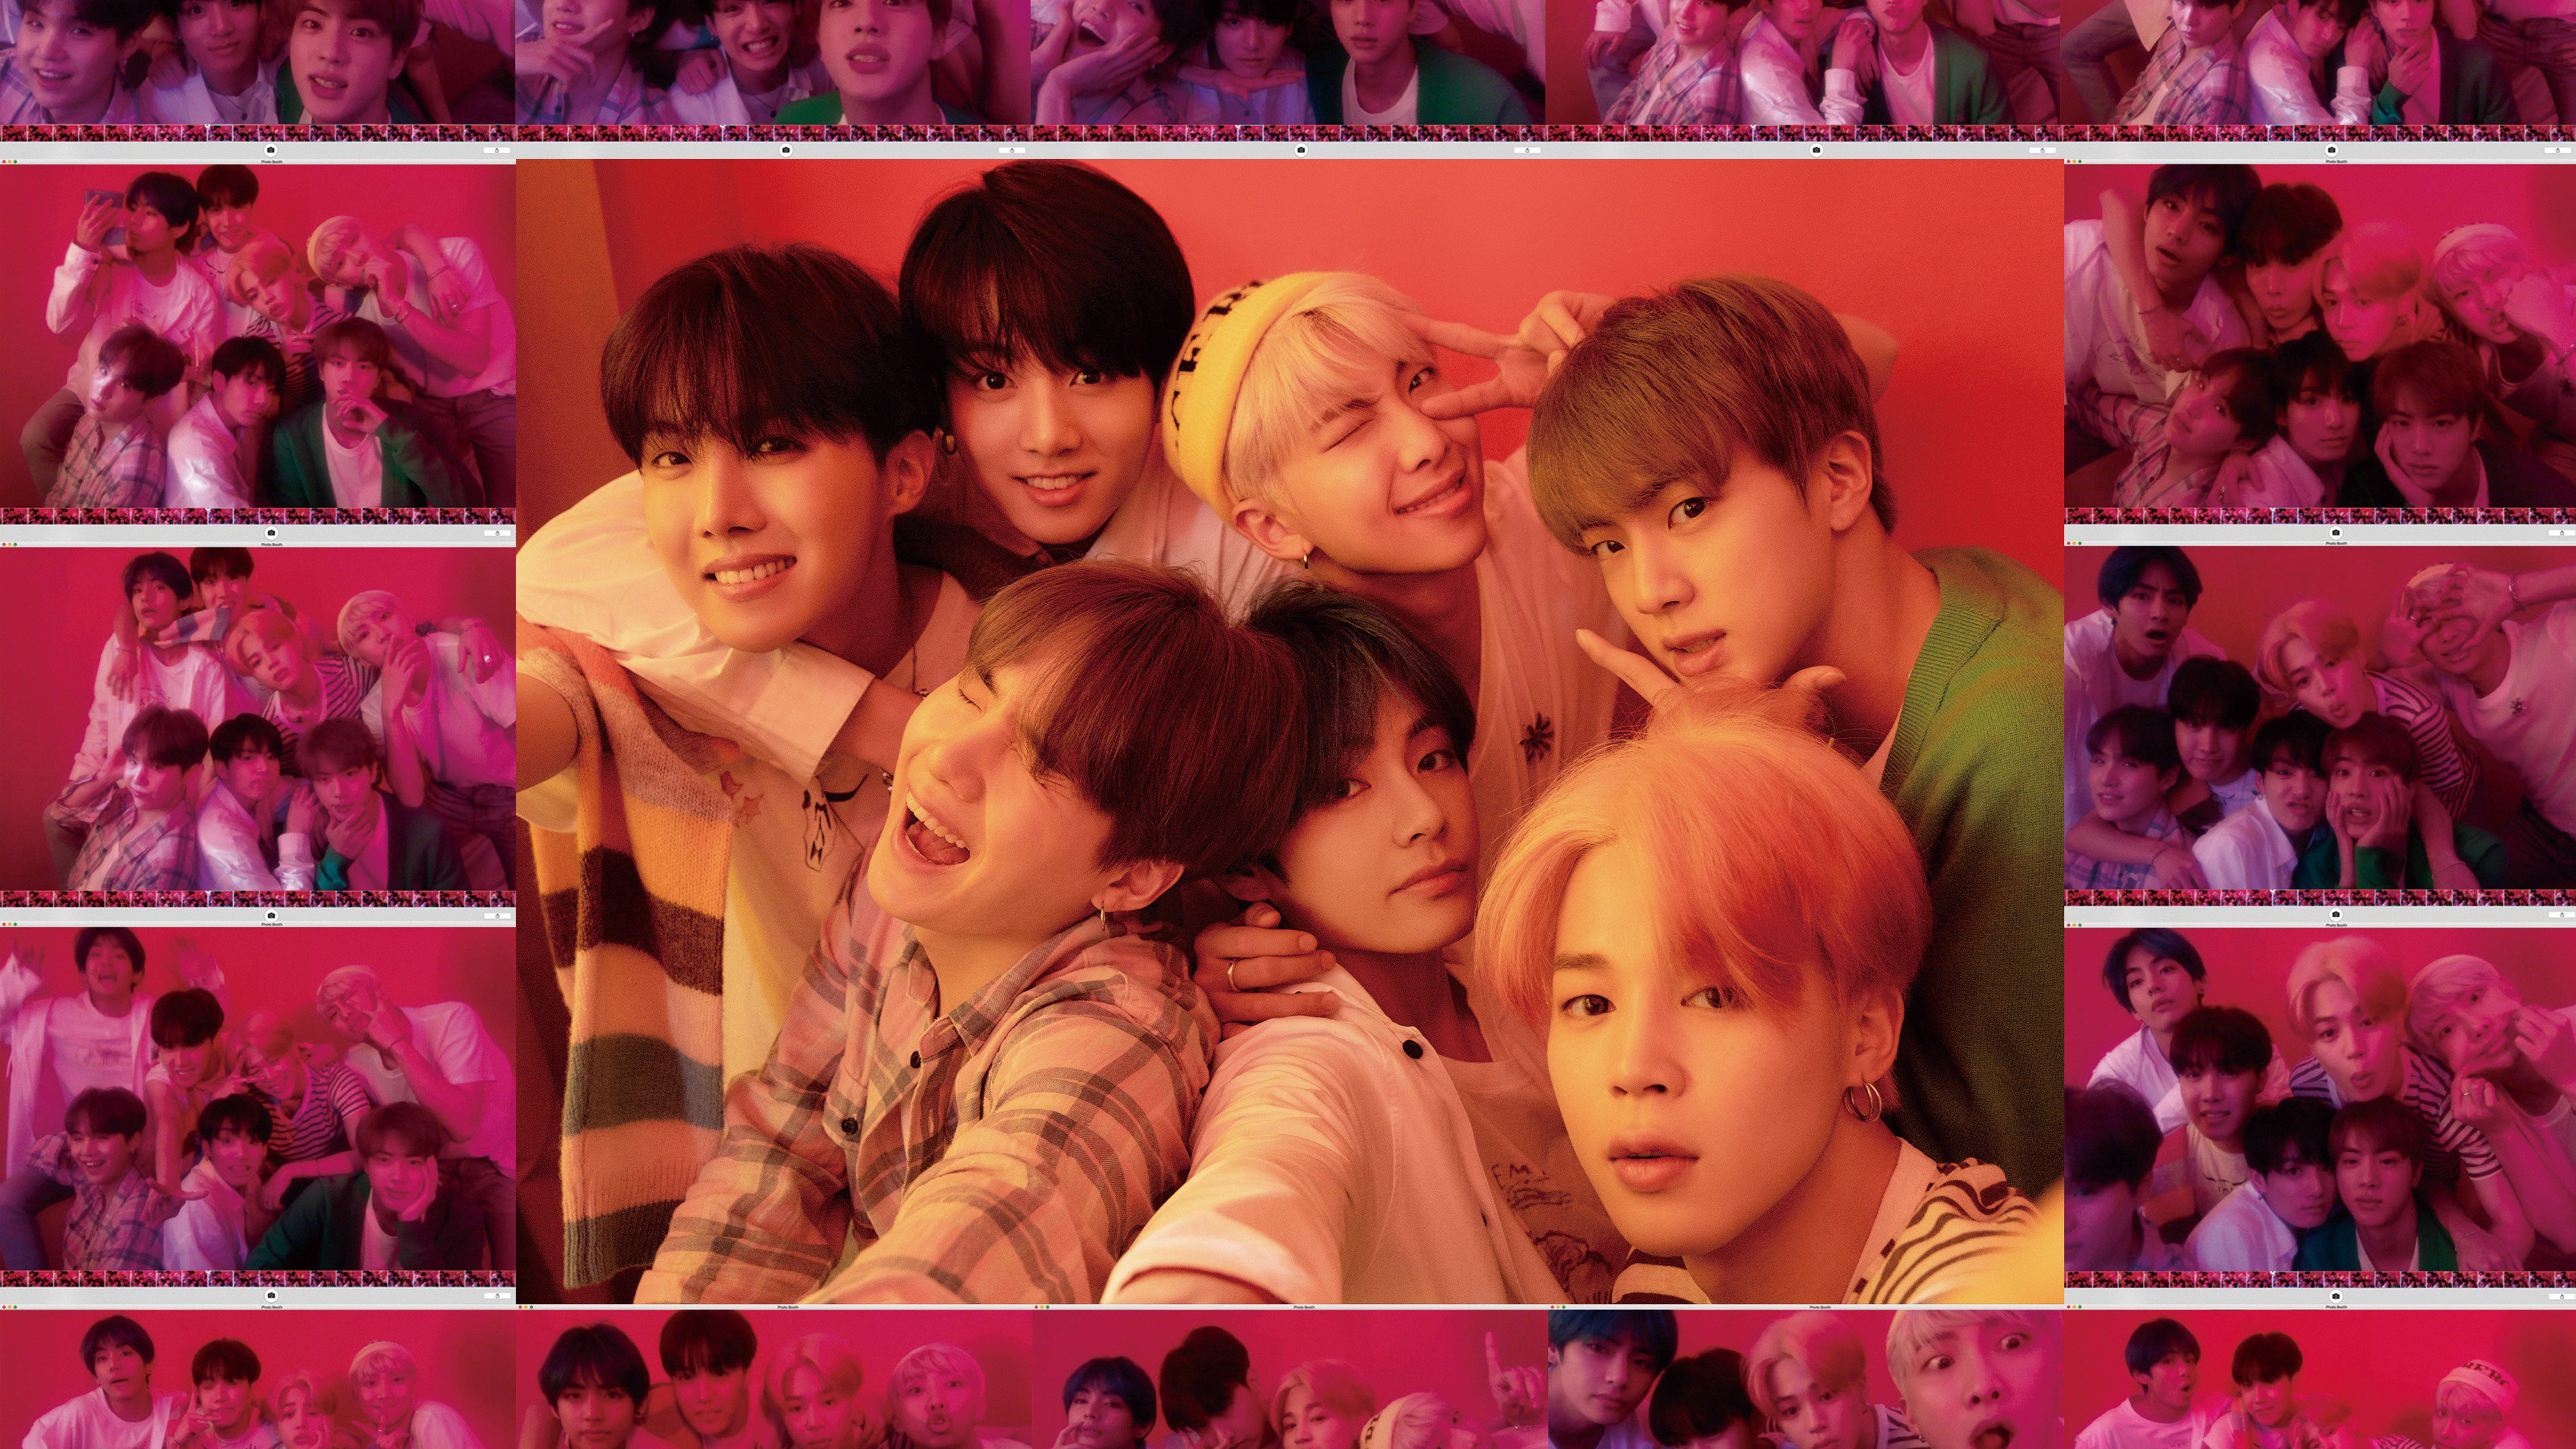 bts map of the soul persona uhdpaper.com 4K 40